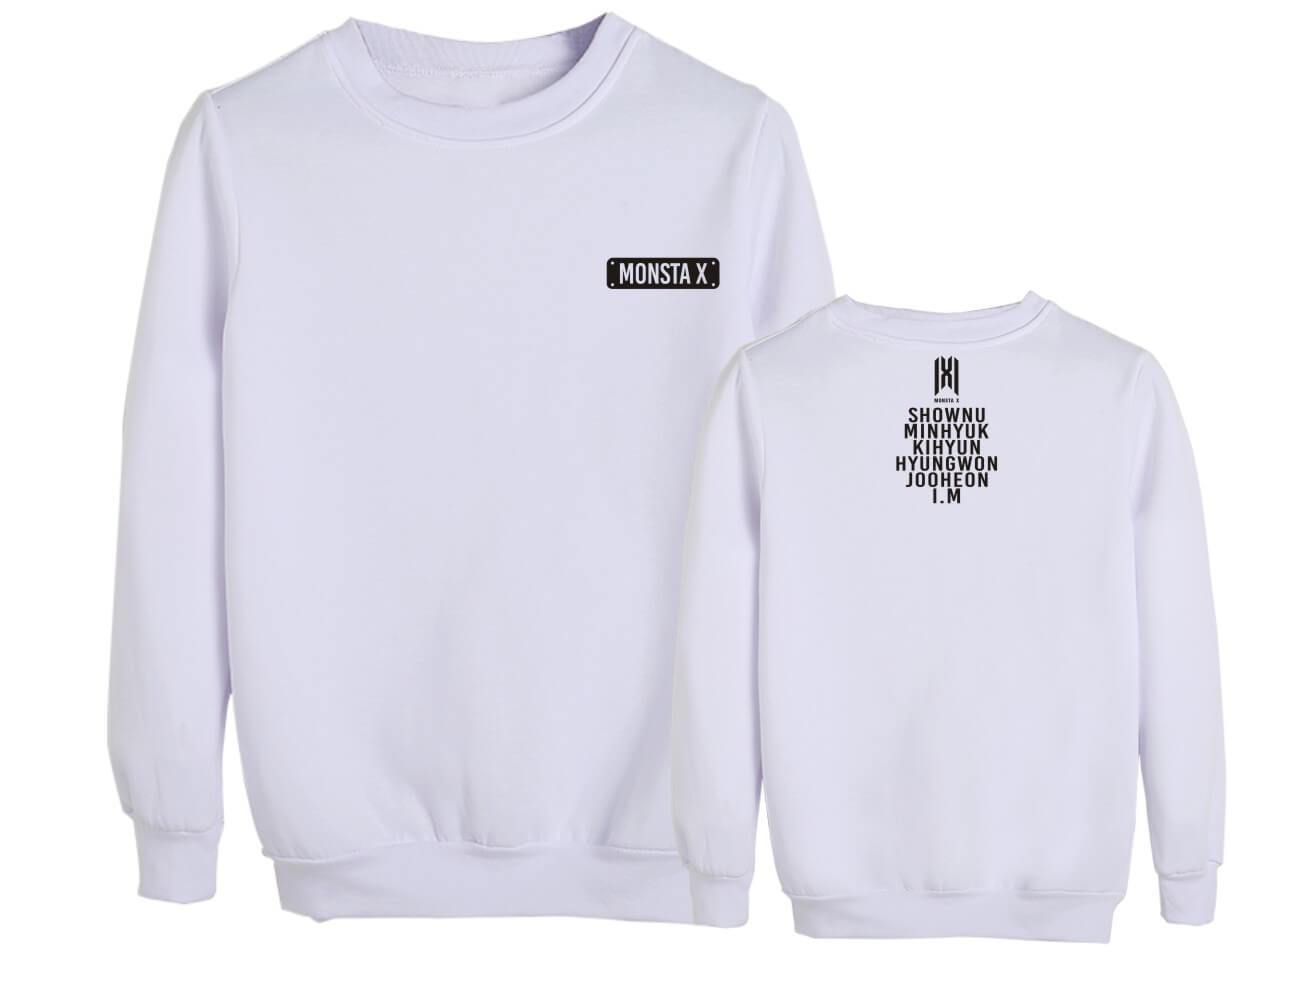 MONSTA X Member Name Printed Sweatshirt